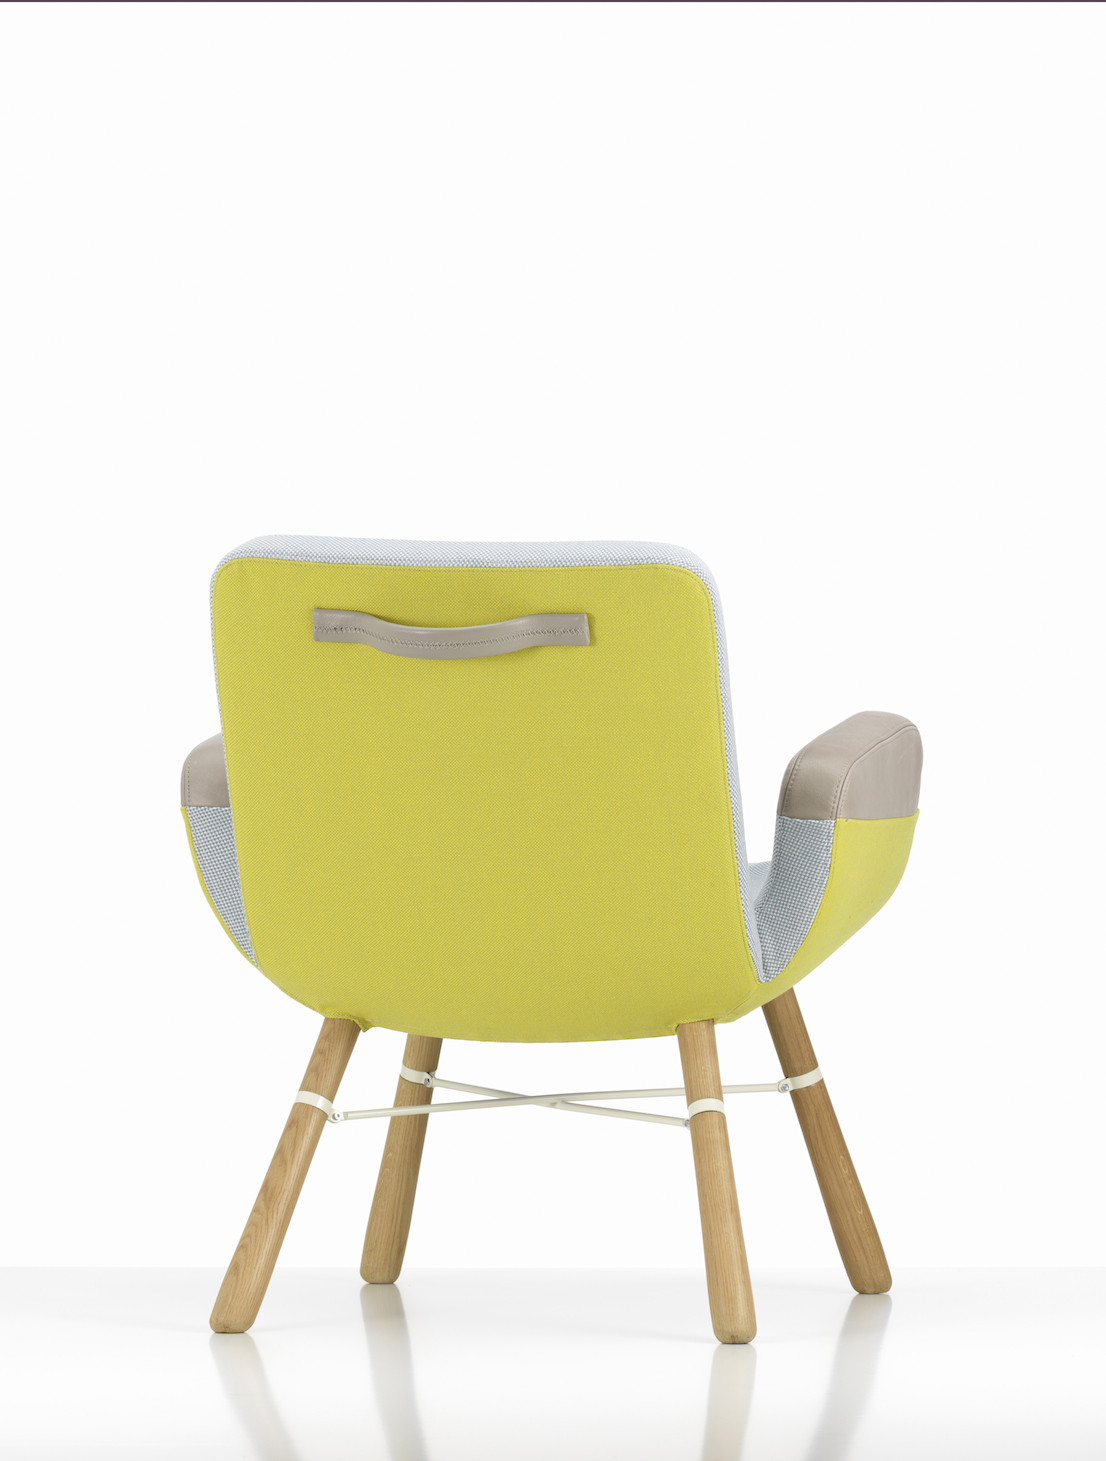 East River Chair, design di Hella Jongerius per Vitra